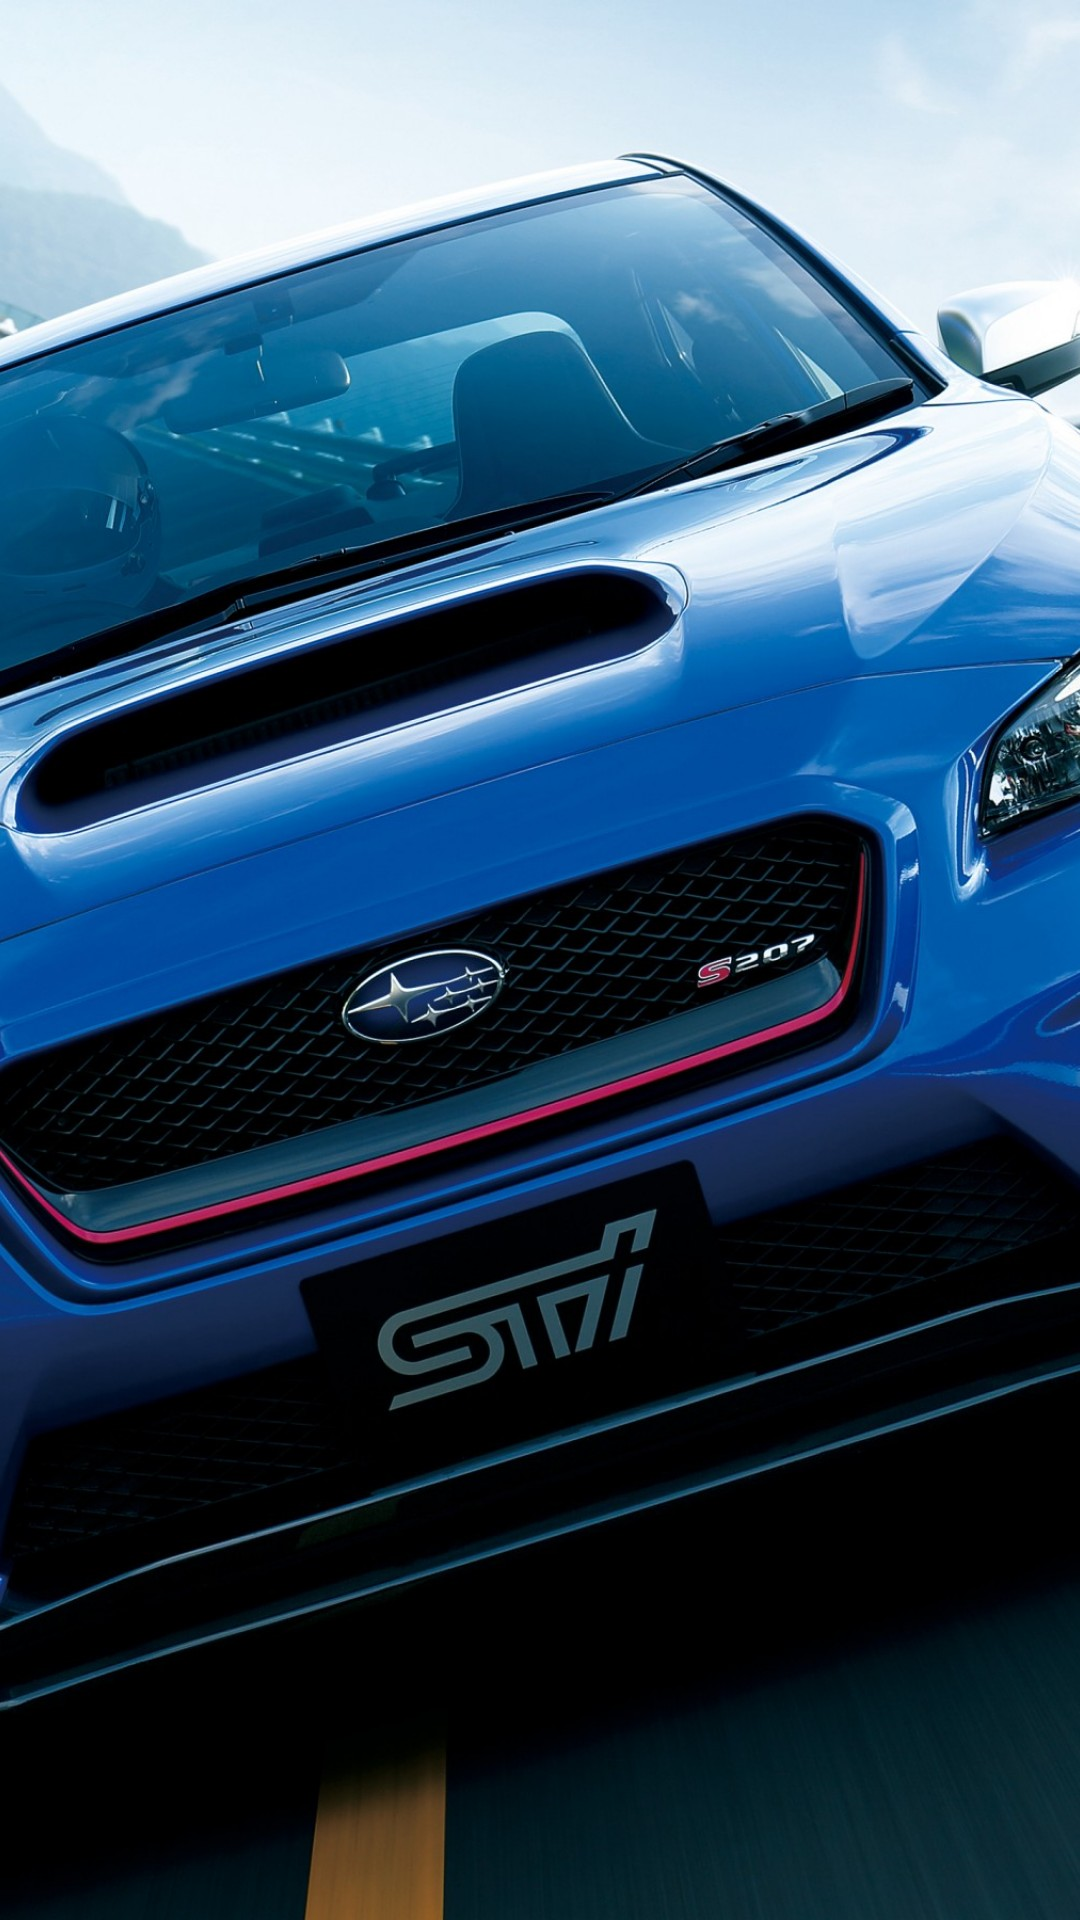 Subaru Wrx Sti Hd Wallpaper For Desktop And Mobiles Iphone 6